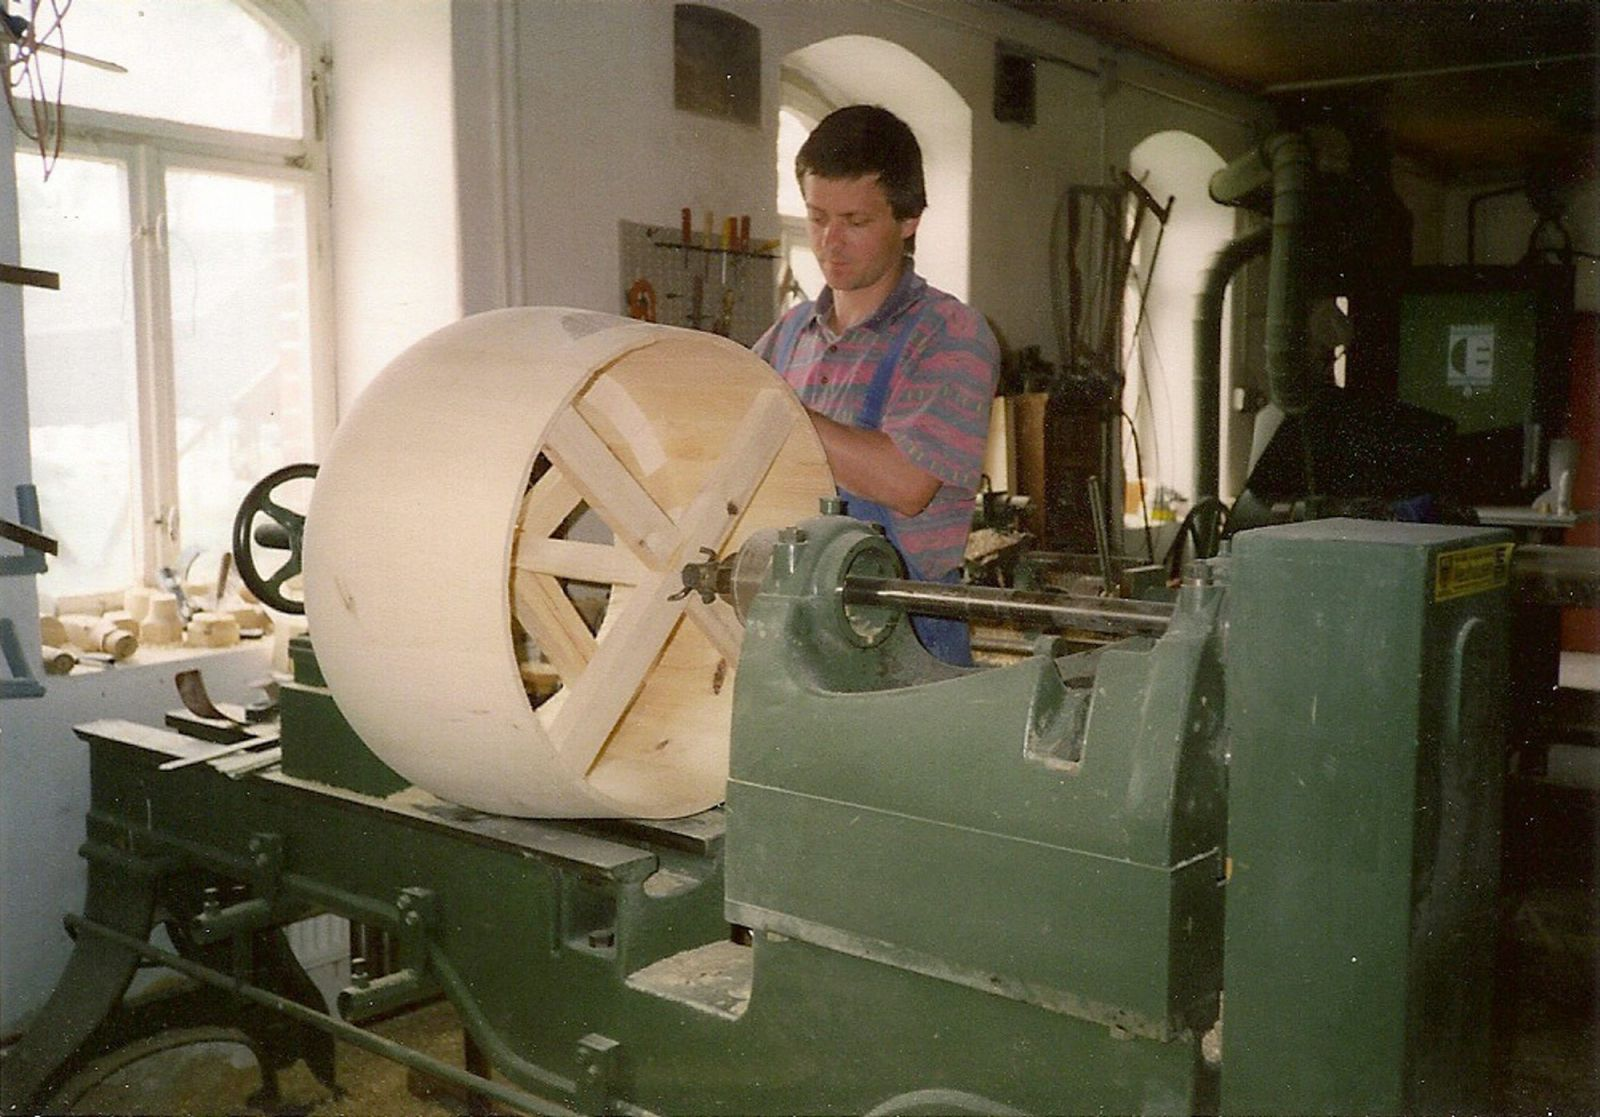 Special lathe for the big ones